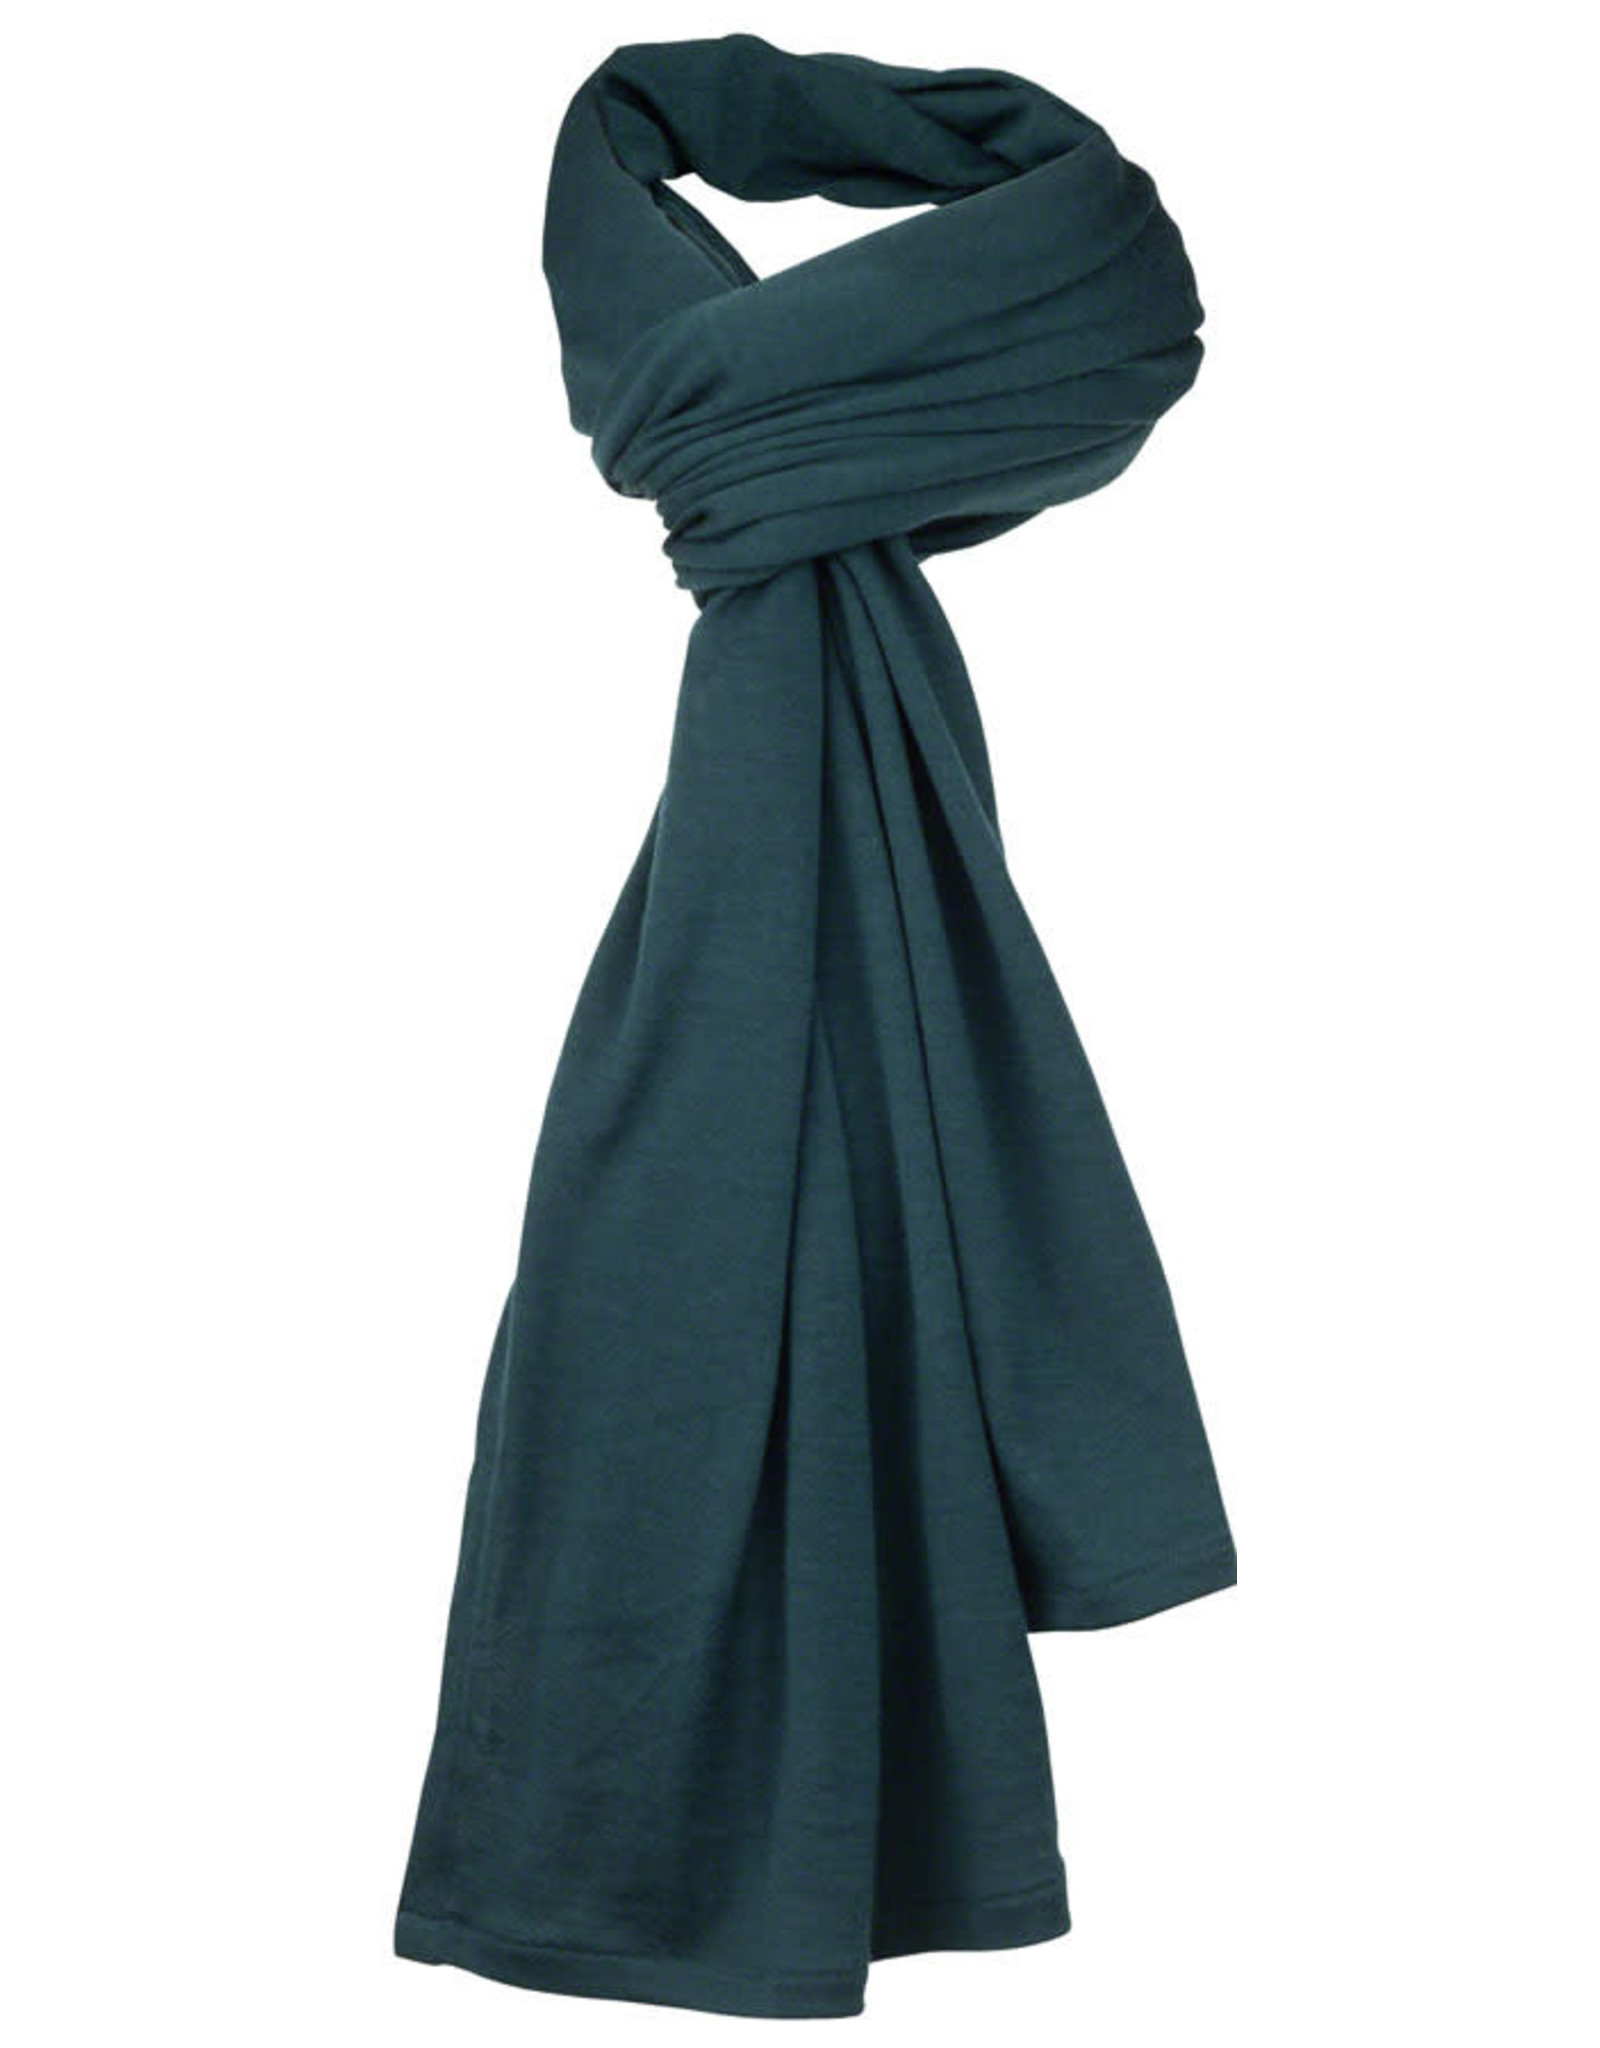 Surly Surly Merino Wool Scarf - Turquoise One Size